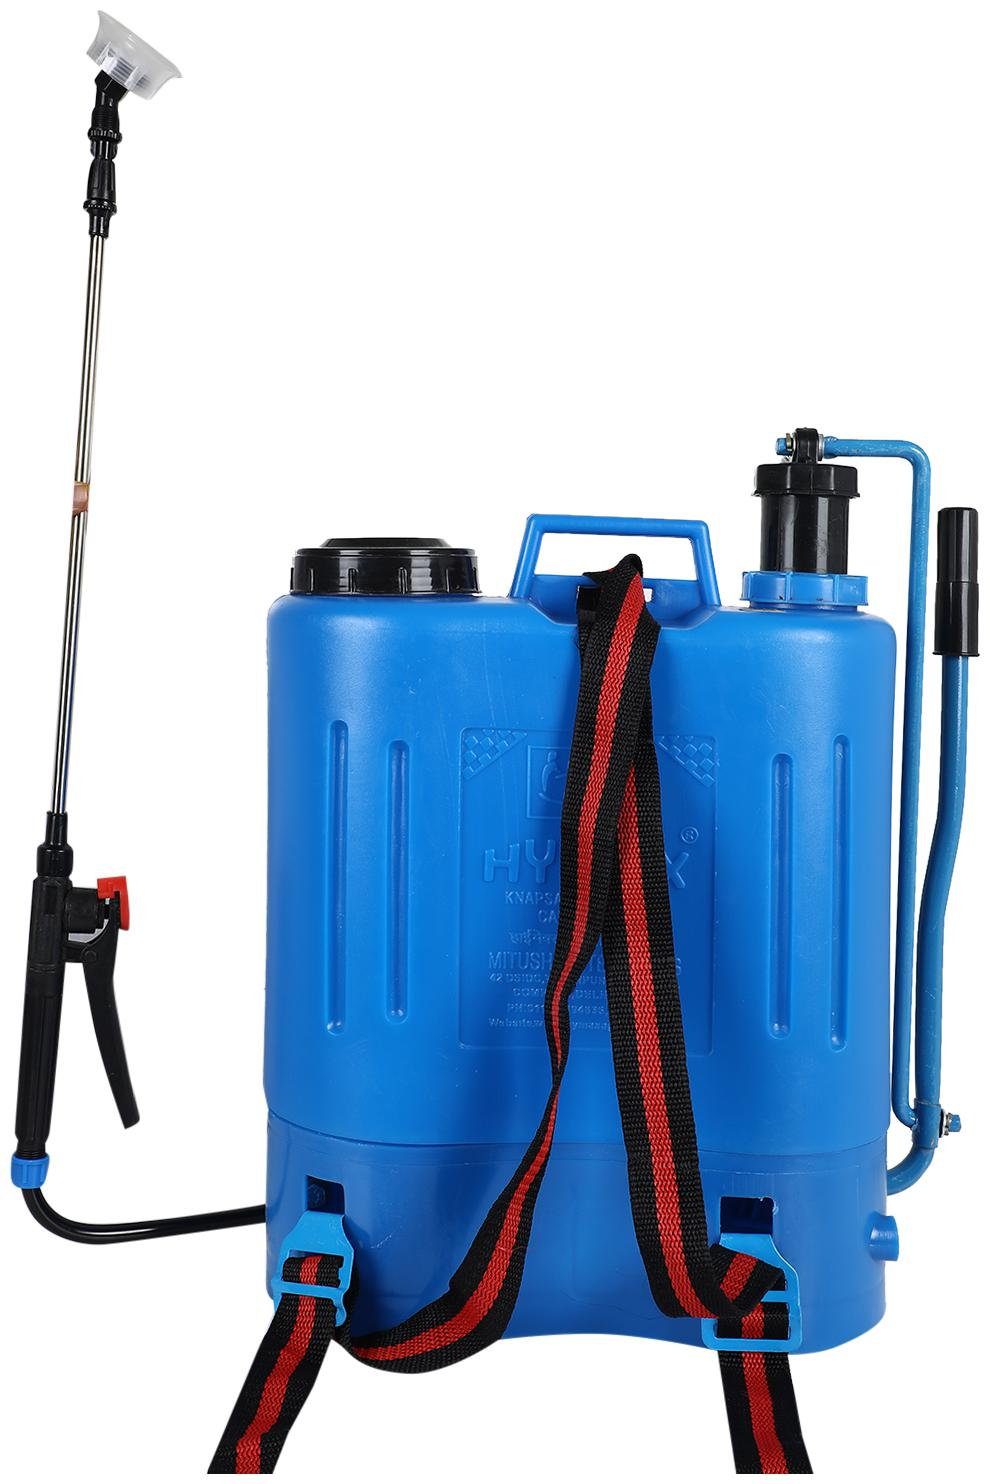 Hymax 16 L_Sprayer 16 L Backpack Pressure Sprayer  Pack of 1  by Skitter